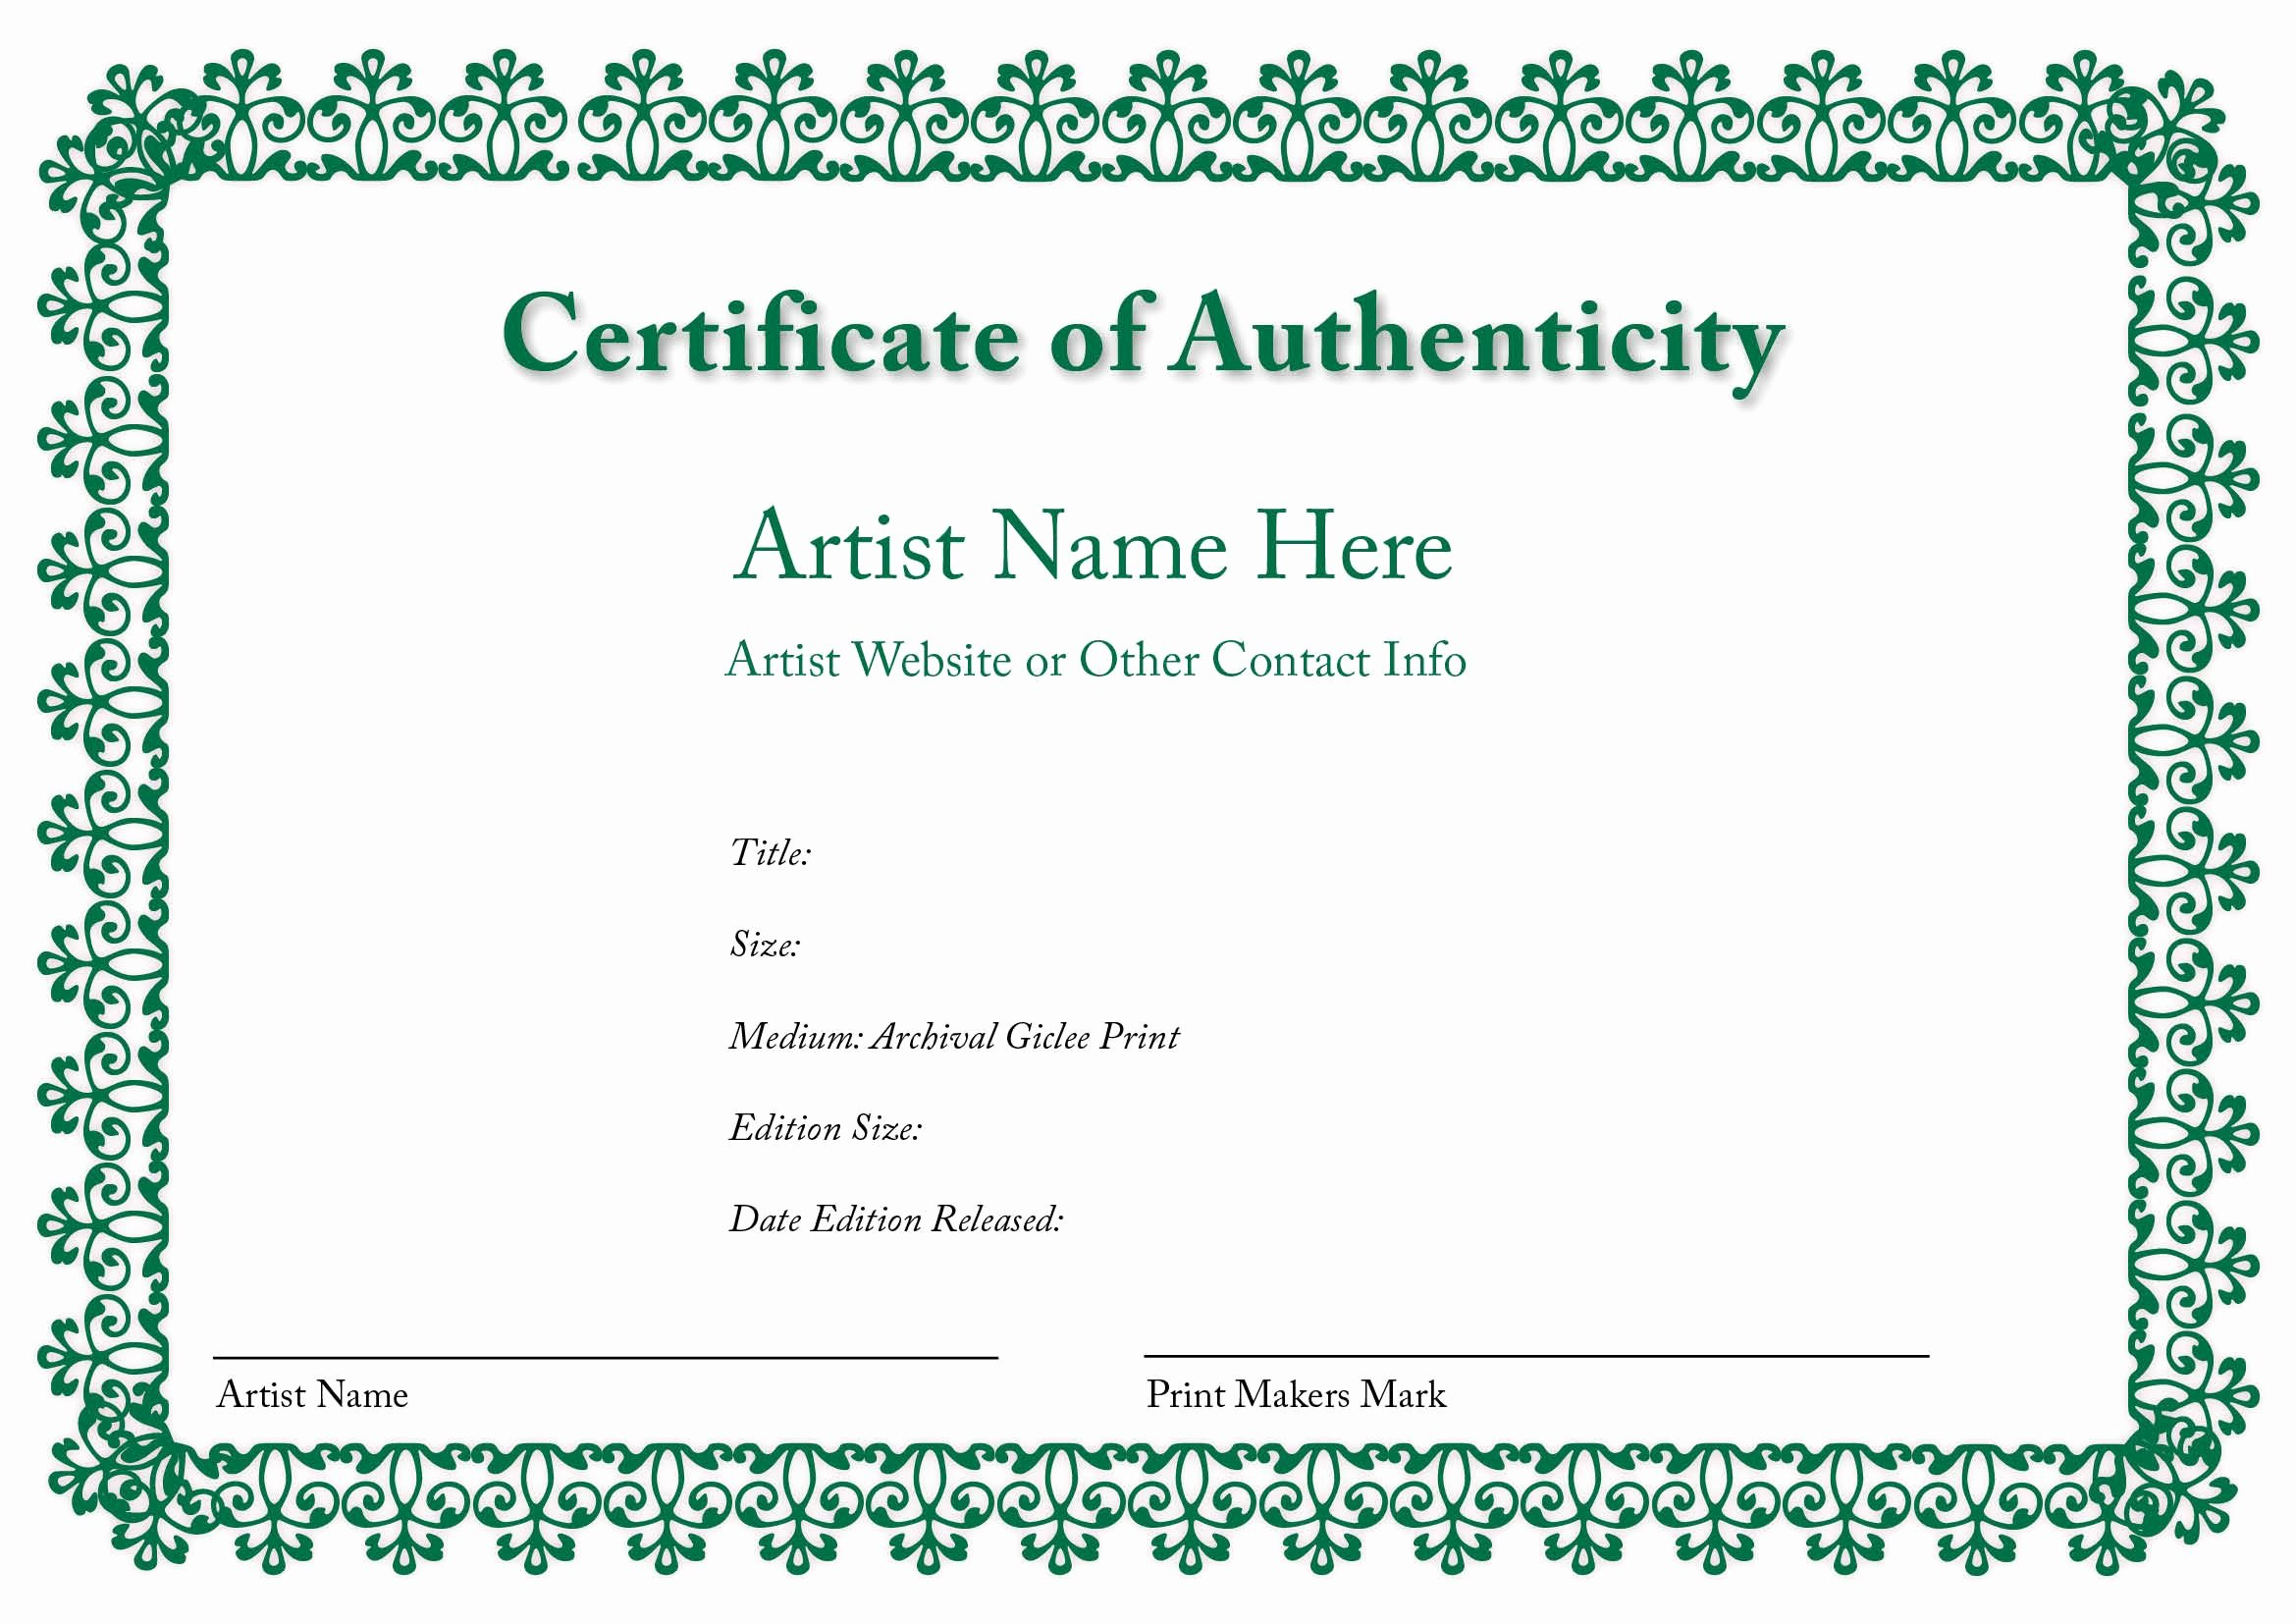 Artwork Certificate Of Authenticity Templates Lovely Certificate Of Authenticity Of An Art Print In 2019